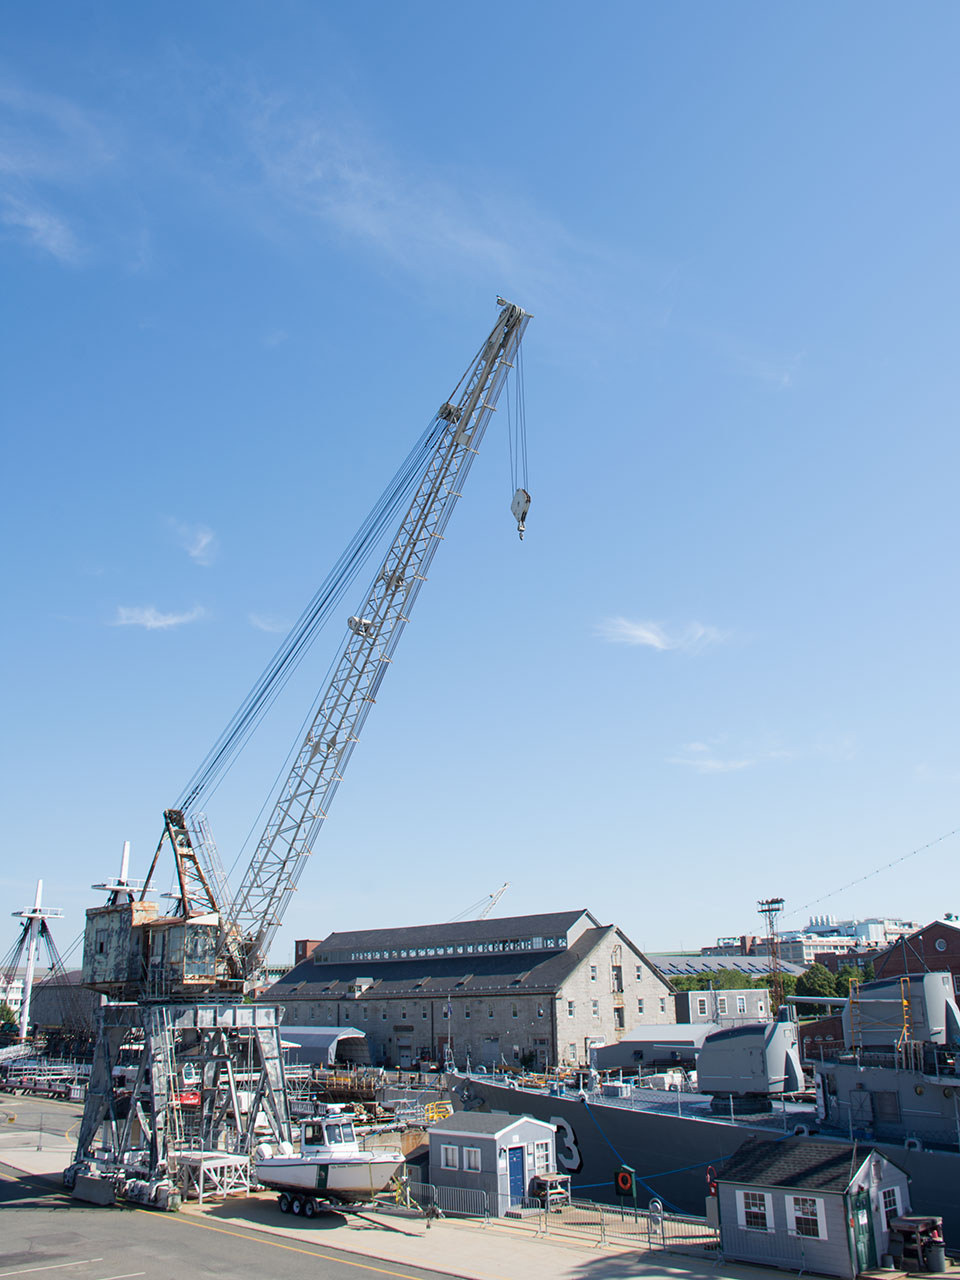 A steel portal crane towers over the bow of a docked warship. Equipment and tool sheds are nearby on the pier. A granite warehouse stands in the background.